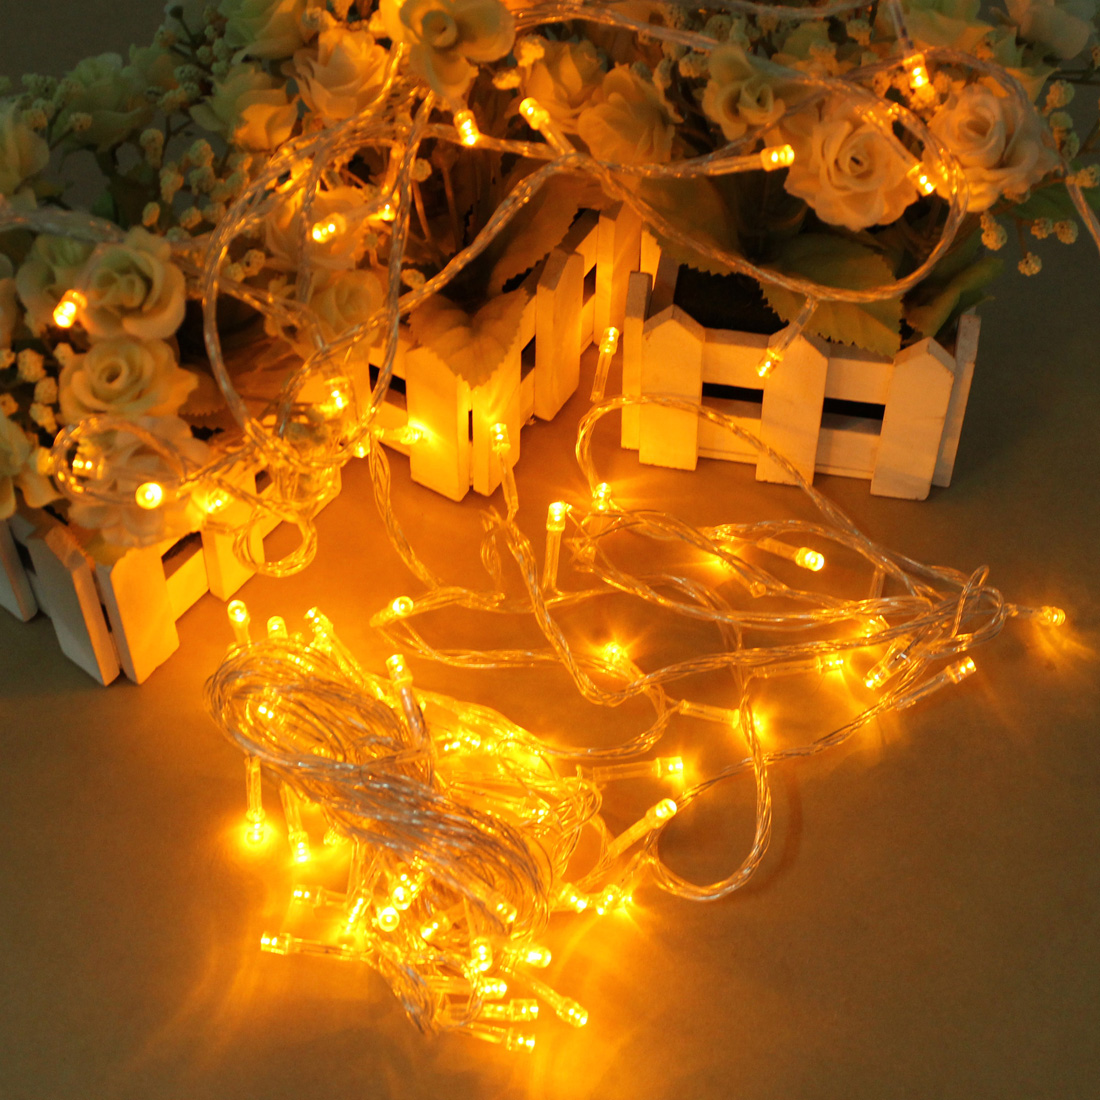 Yellow Led String Lights : 100 LED 10m Yellow String Decoration Light For Christmas 110V 220V Alex NLD